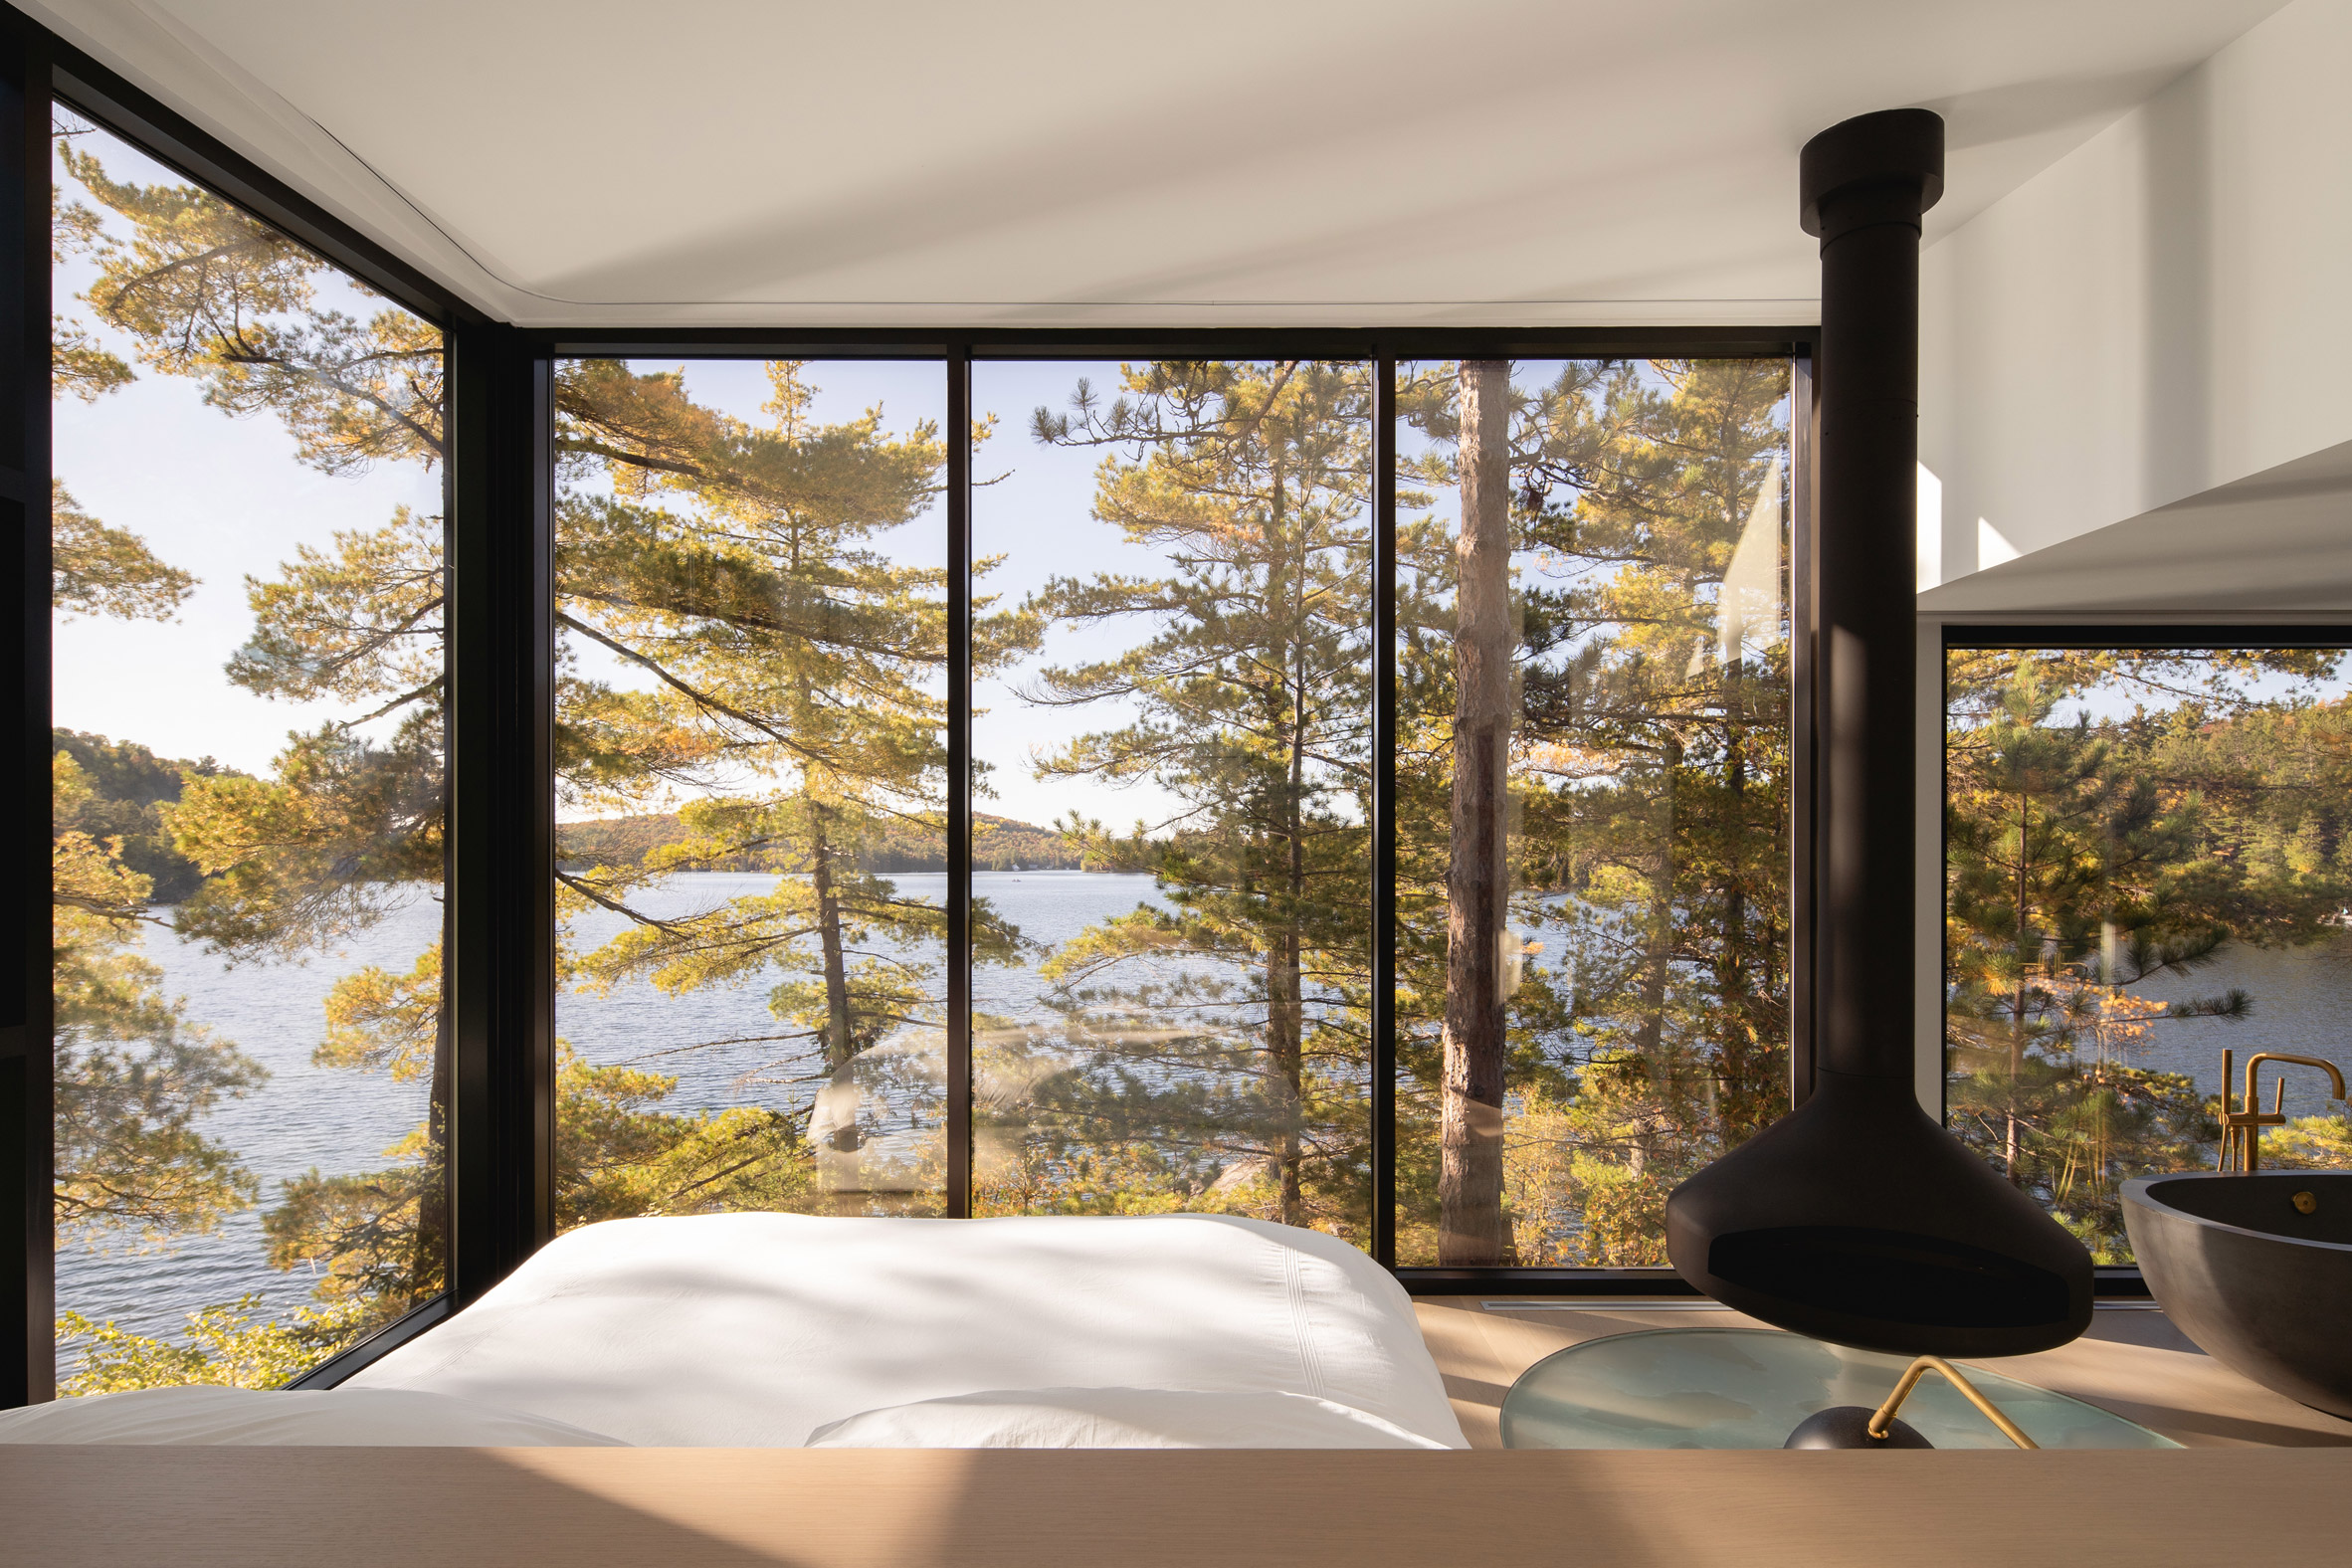 Bedroom with fireplace and bath in Candian lake house